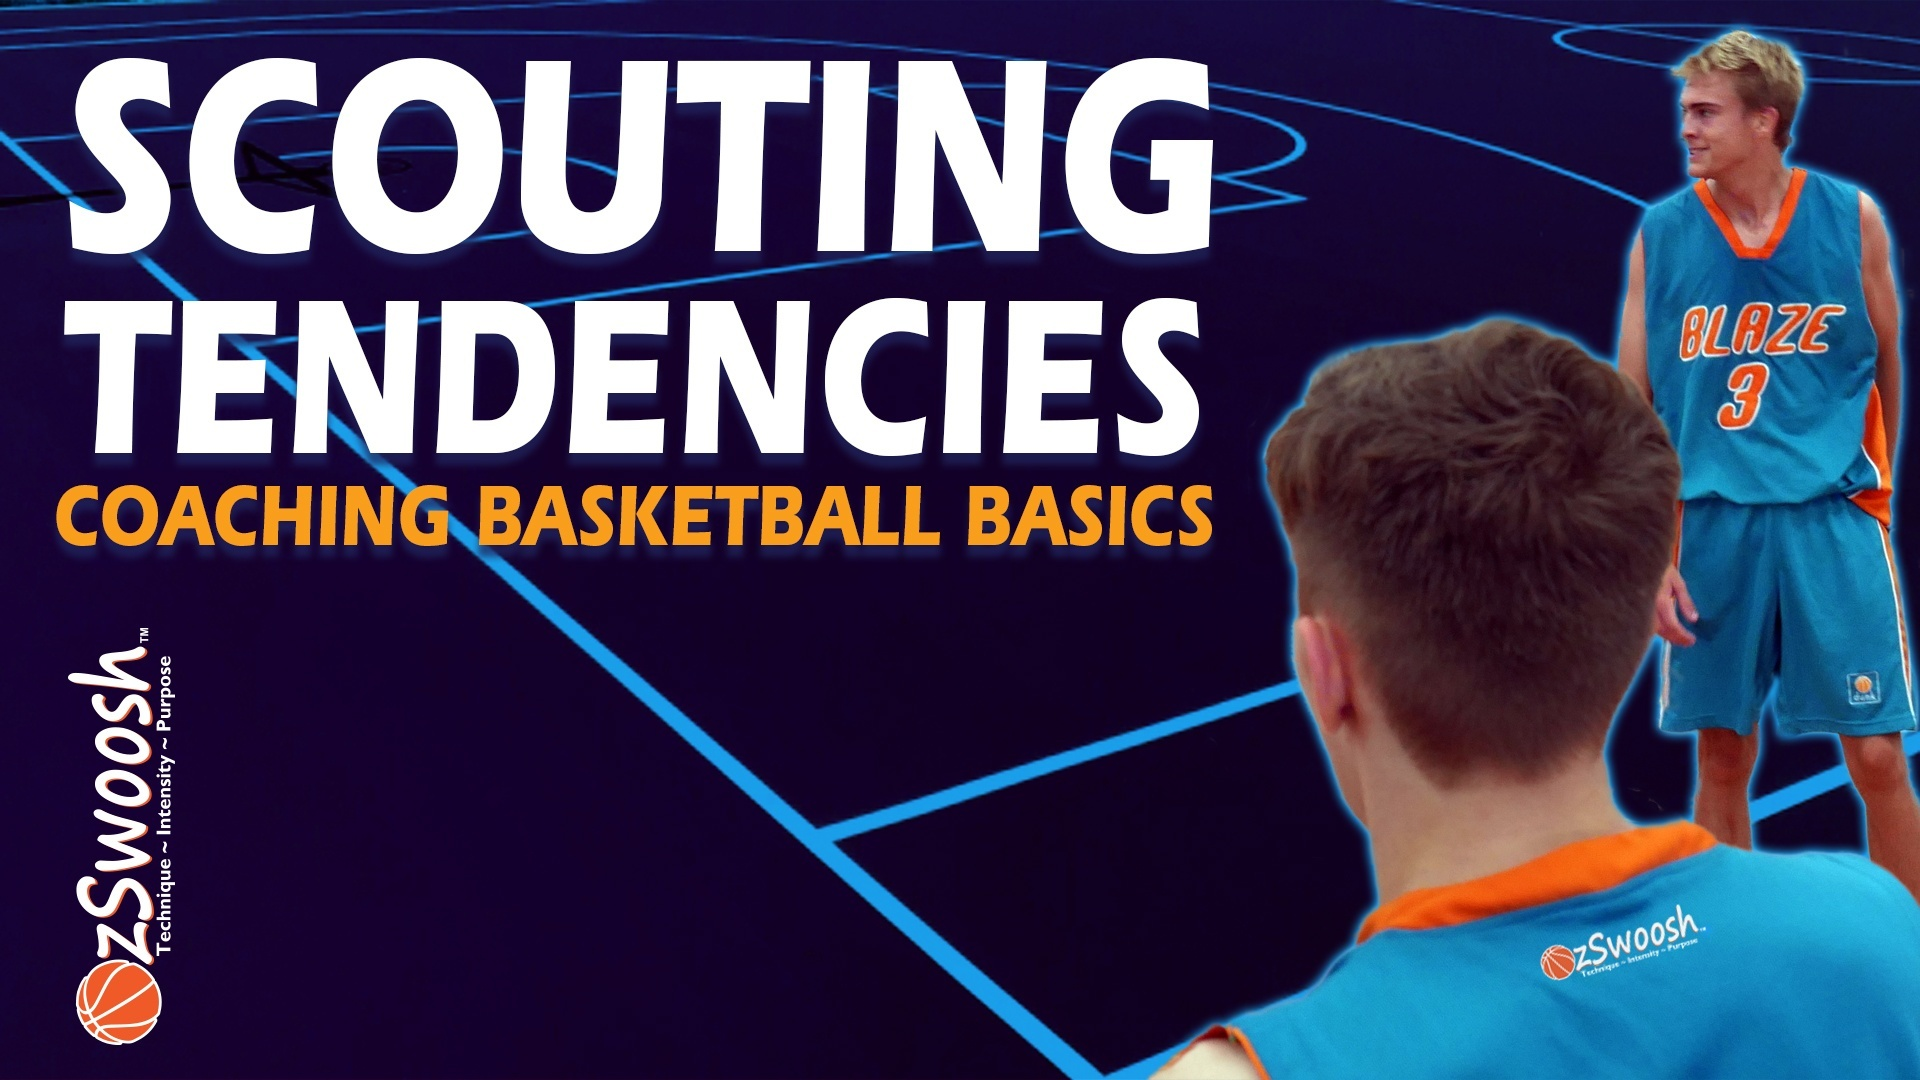 Basketball Defense - Defending a driver or shooter